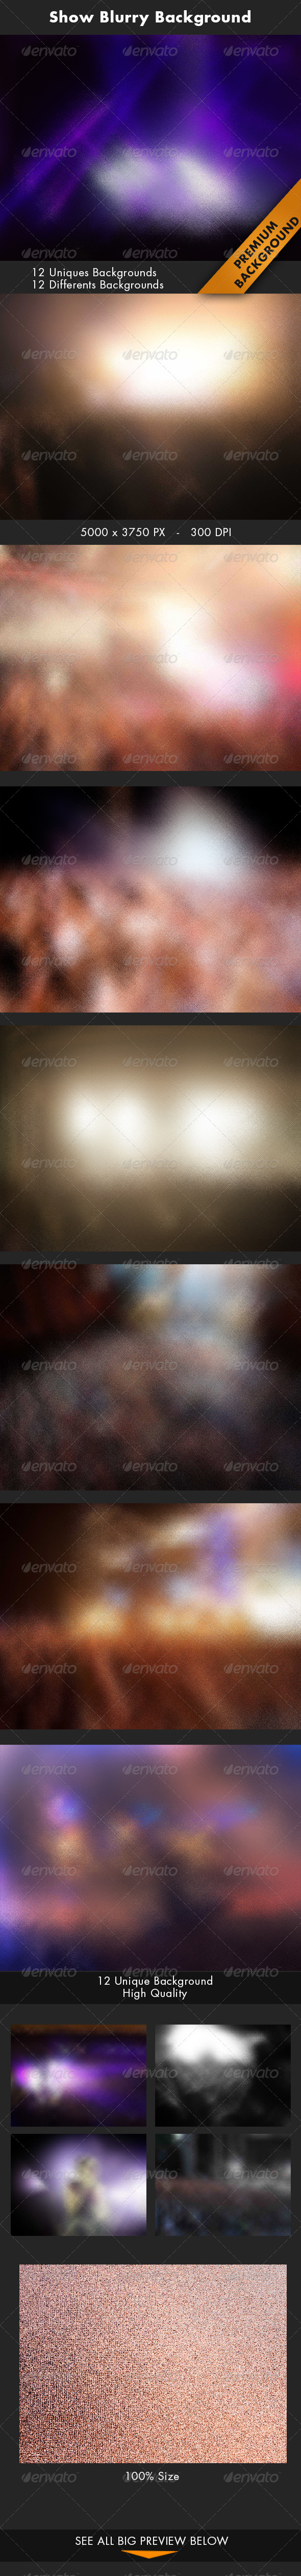 GraphicRiver Show Blurry Background 7383657